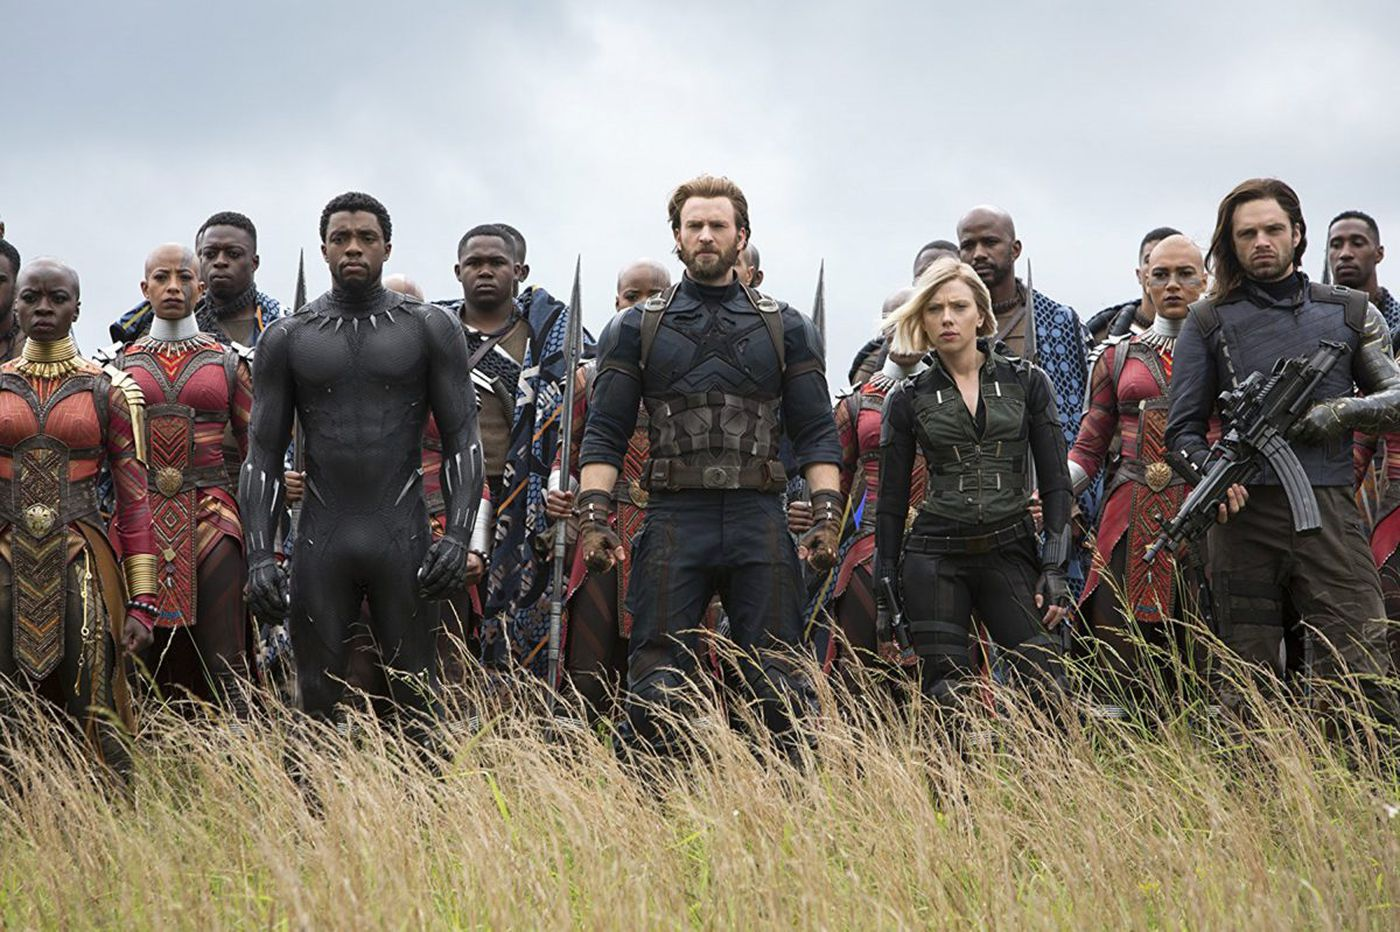 'Avengers: Infinity War': An over-plotted and overly long superhero epic